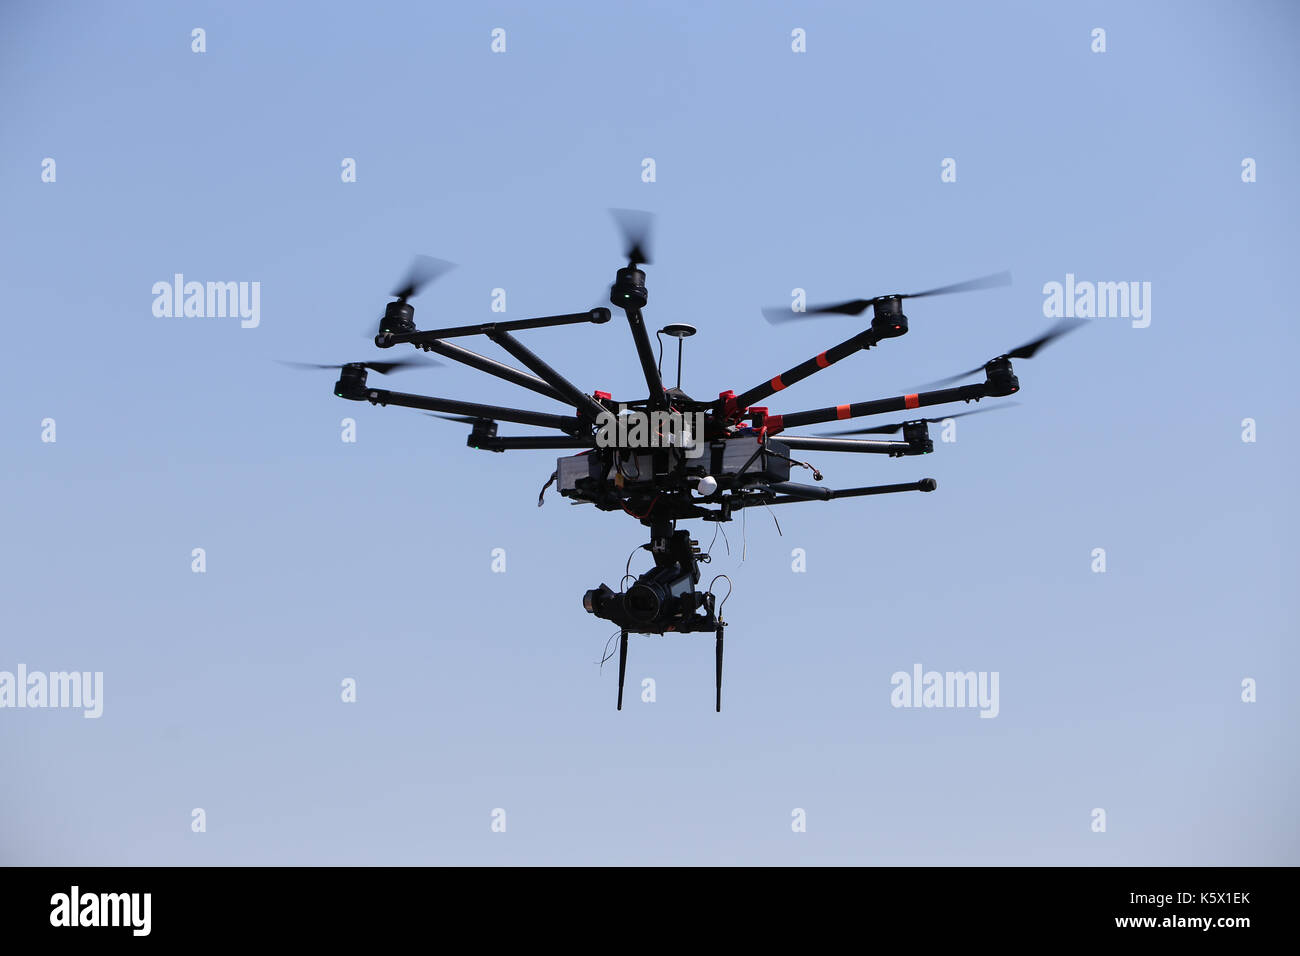 Black hexacopter octocopter is flying in sky - Stock Image